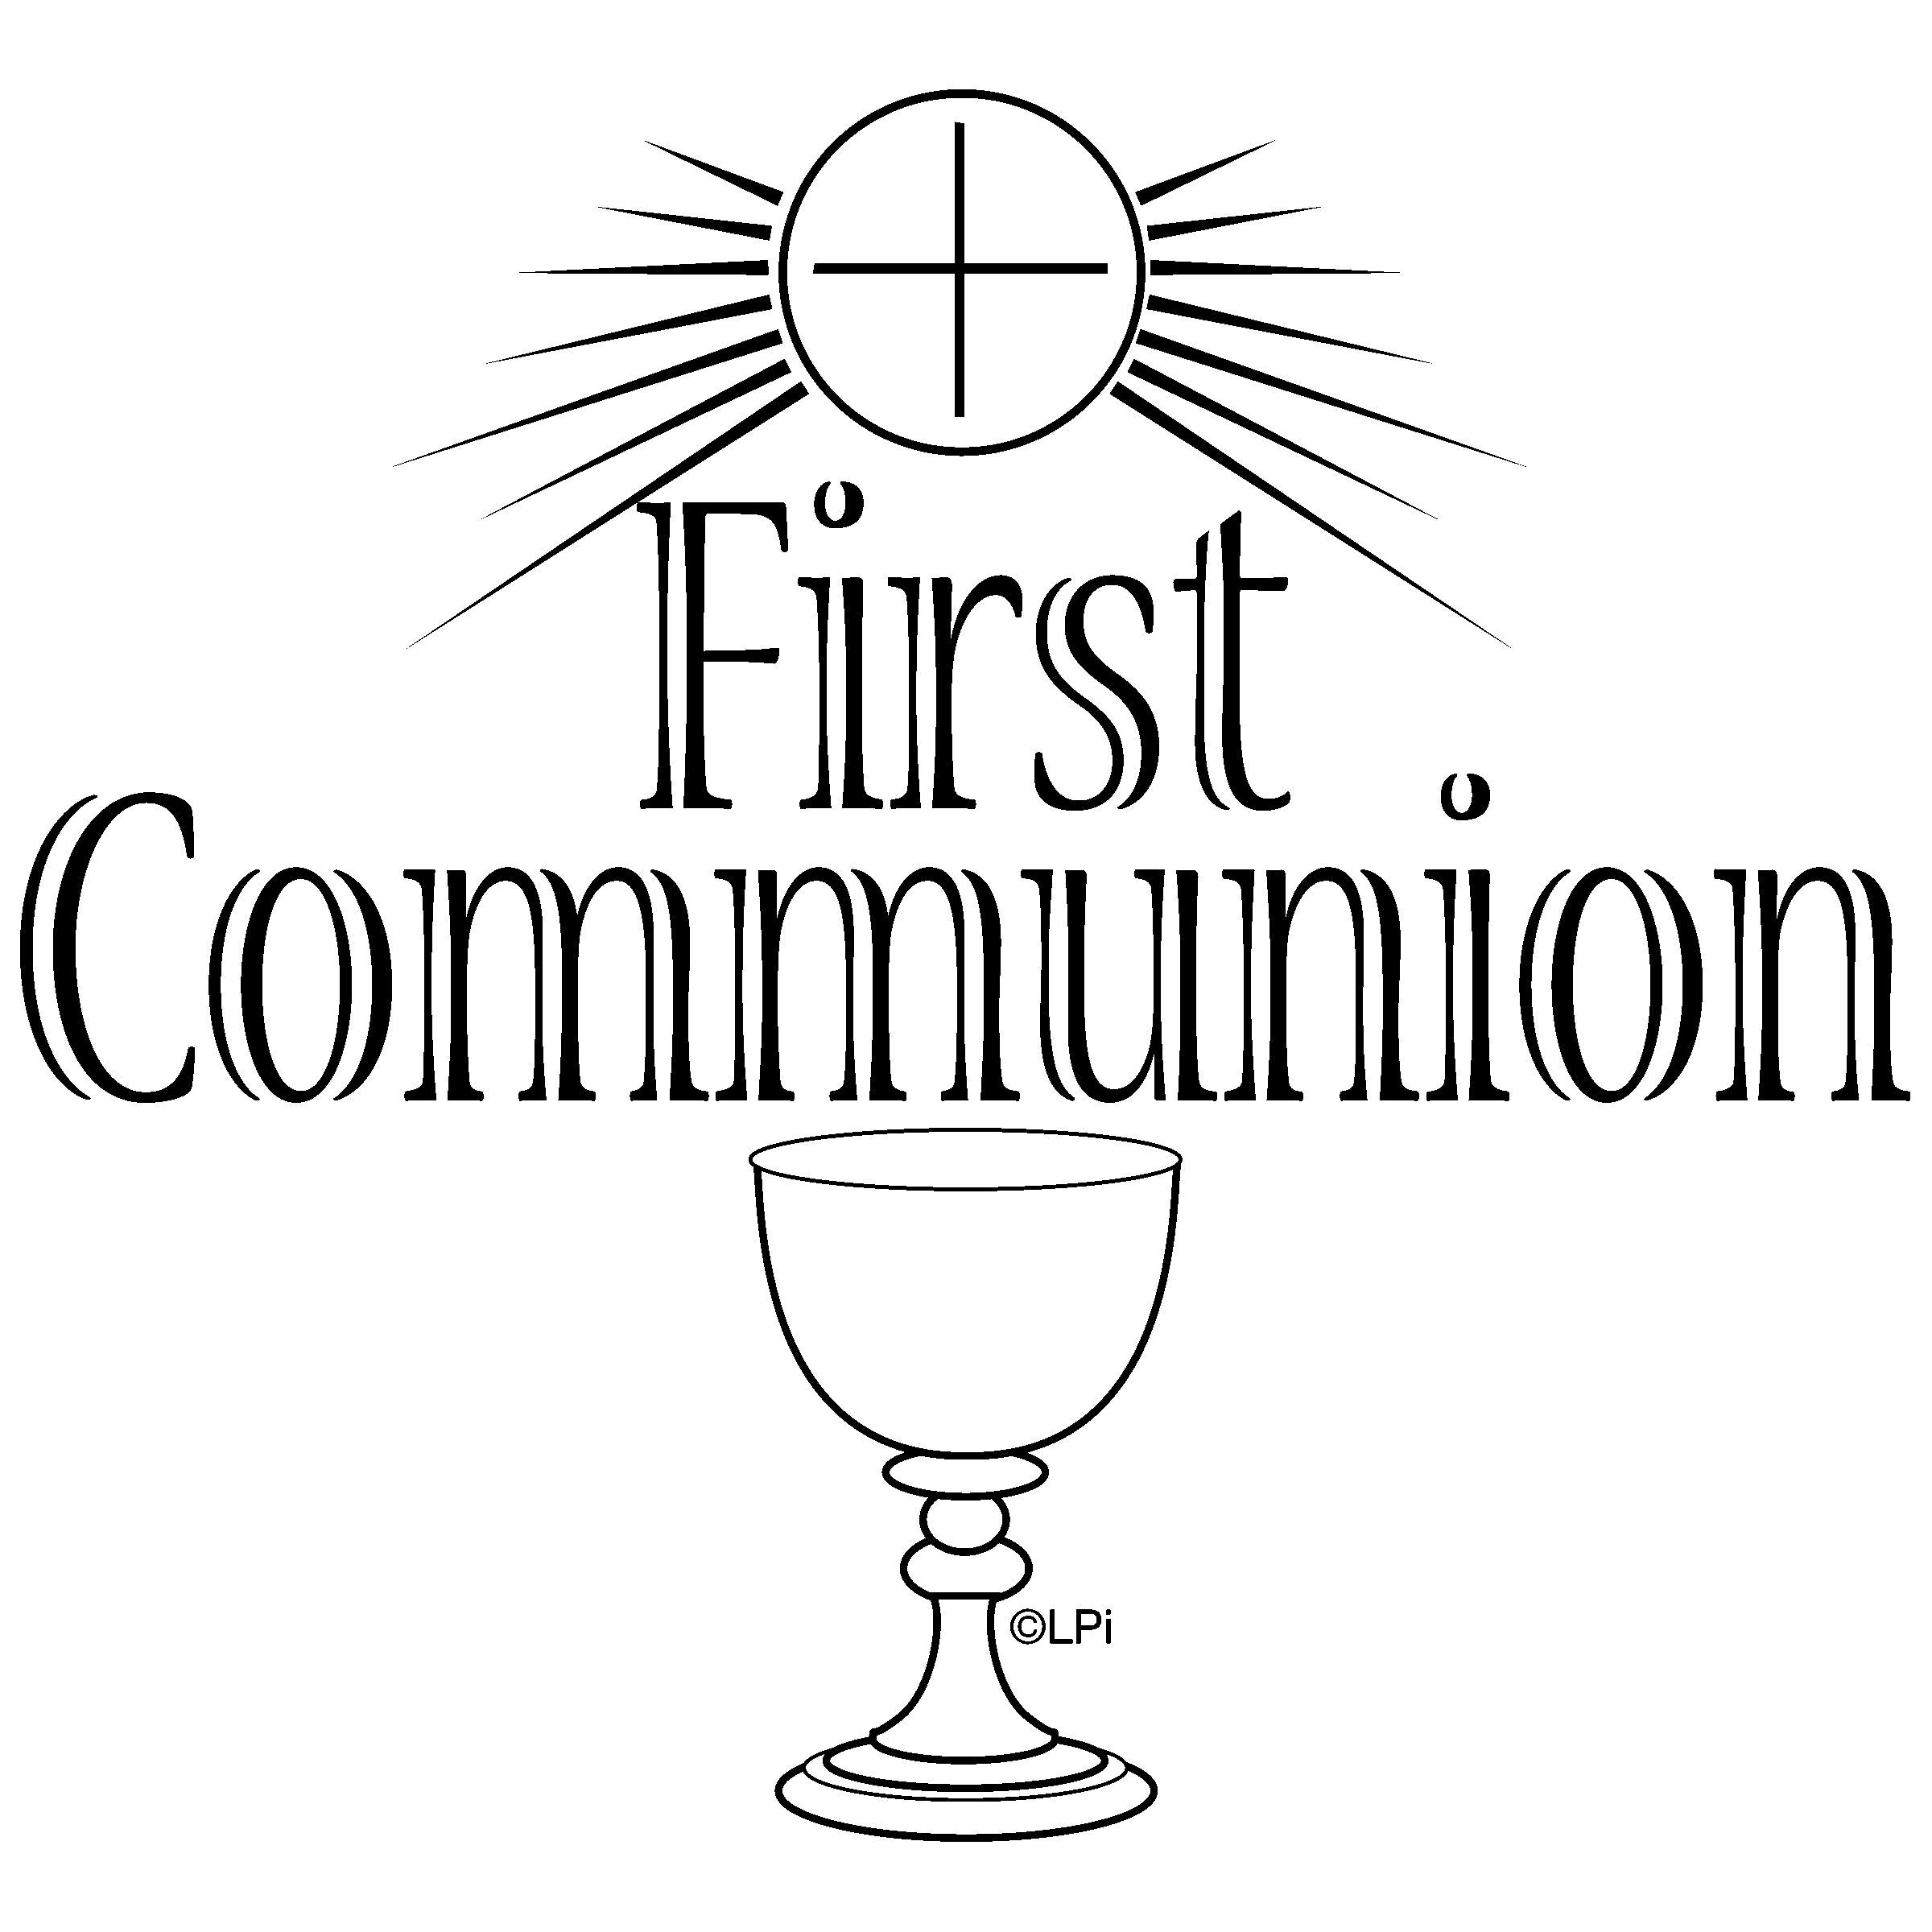 First Communion Firstmunion Clip Art Clipart Gclipart